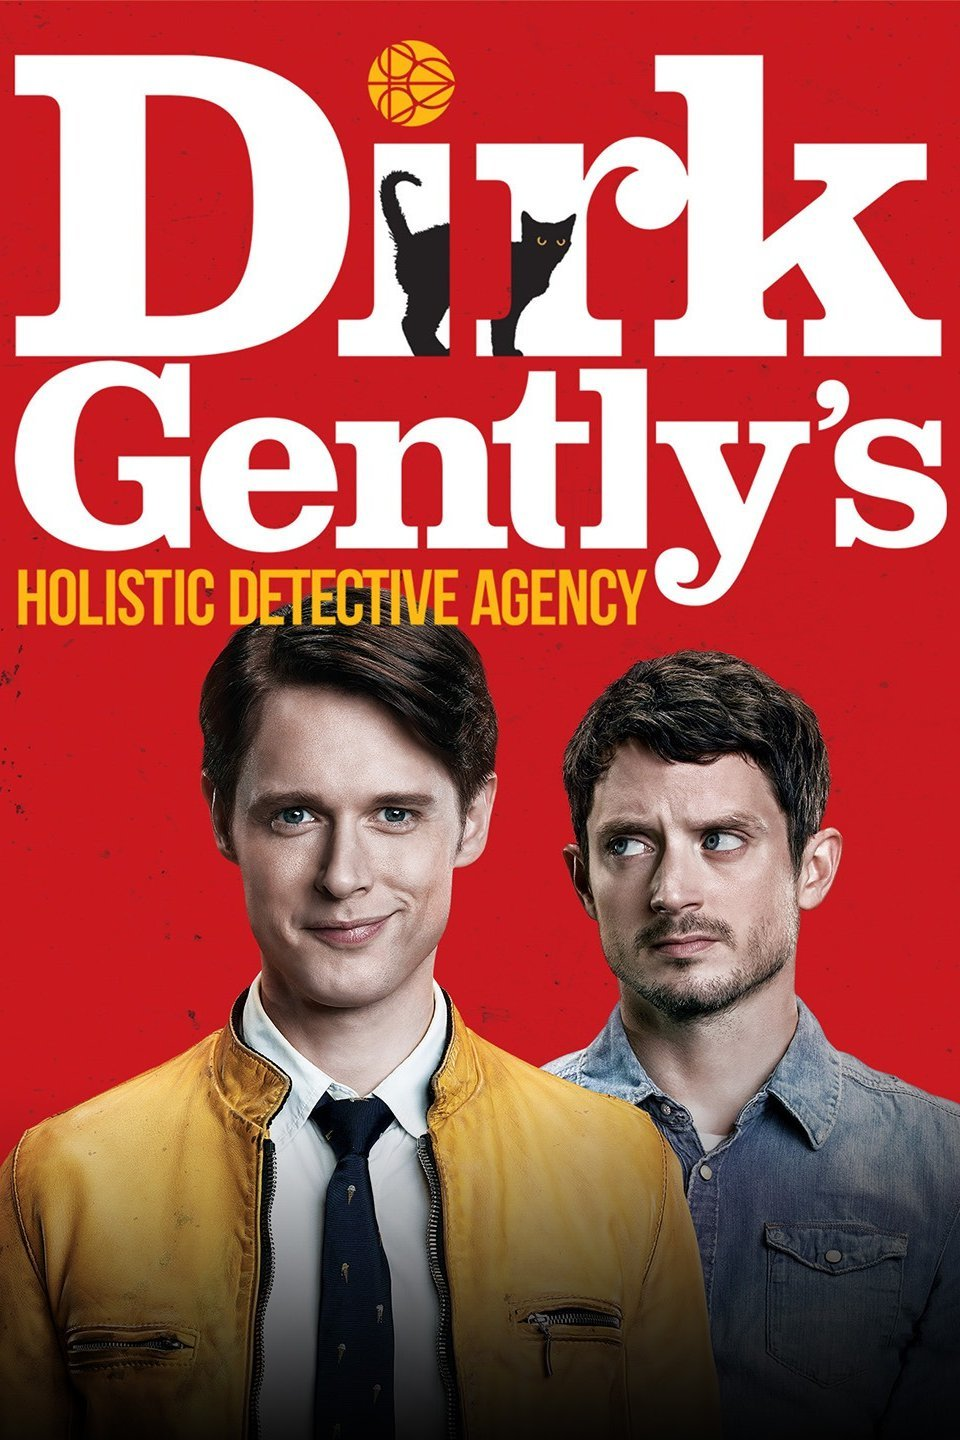 watch-dirk-gentlys-holistic-detective-agency-online